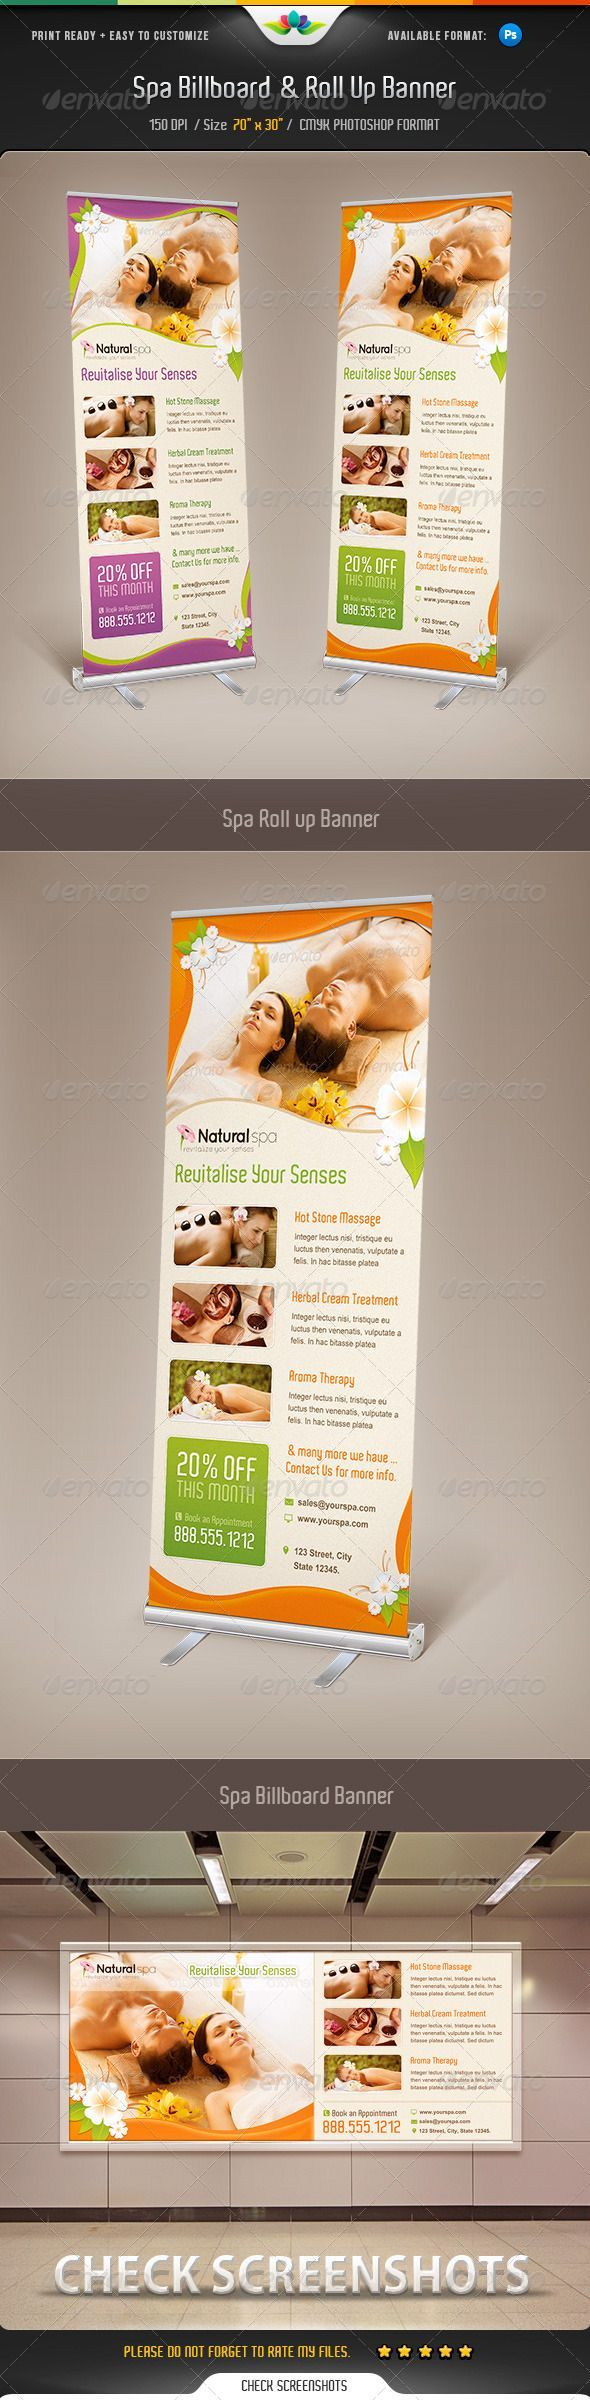 Spa Billboard & Roll Up Banner